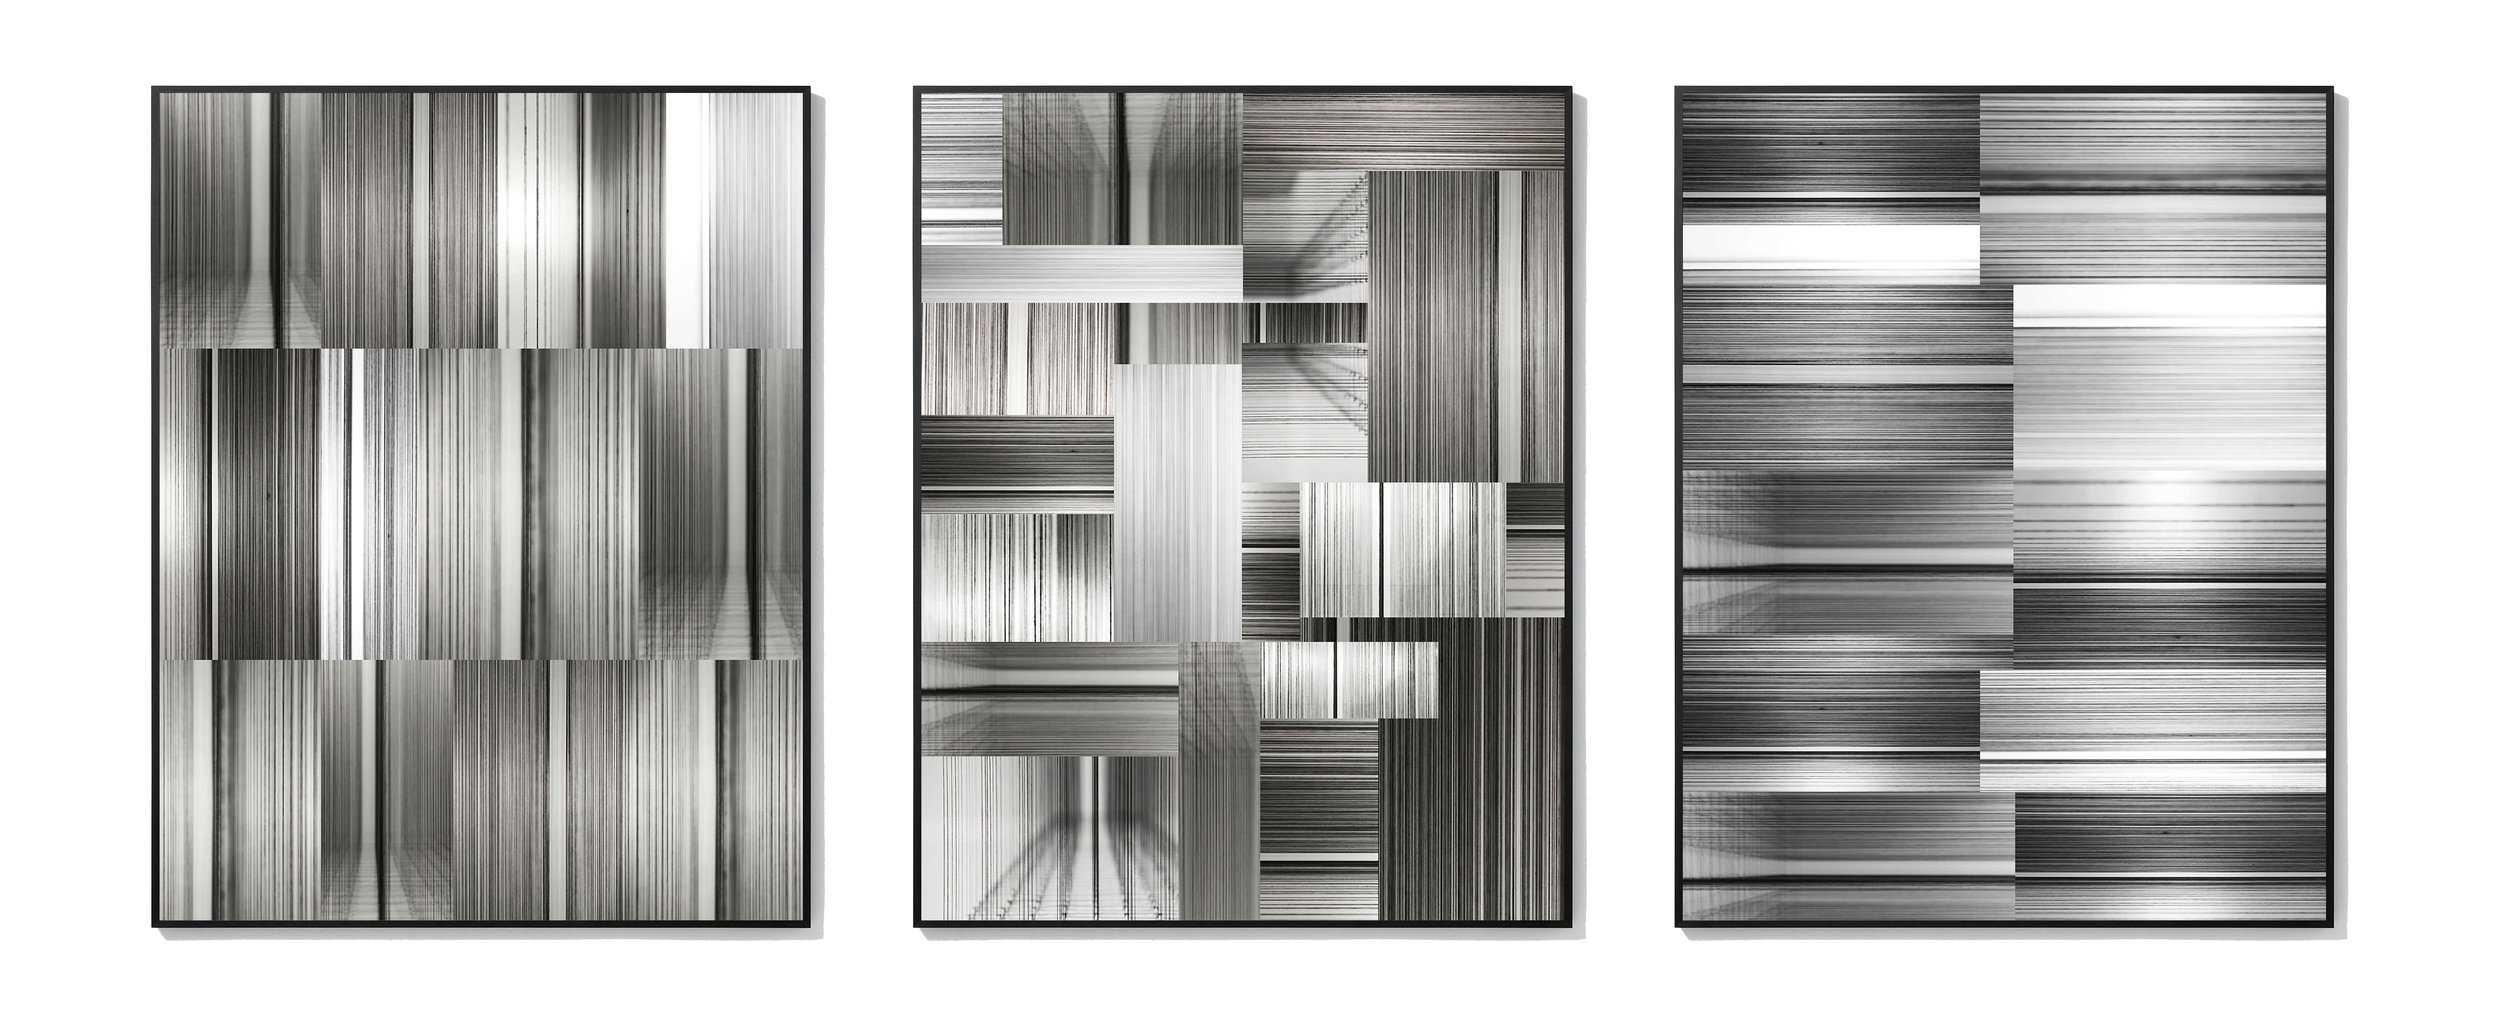 EunHye-Kang_Sequence-No.05,06,07_Digital-Collage_70x90(cm)each_2017.jpg